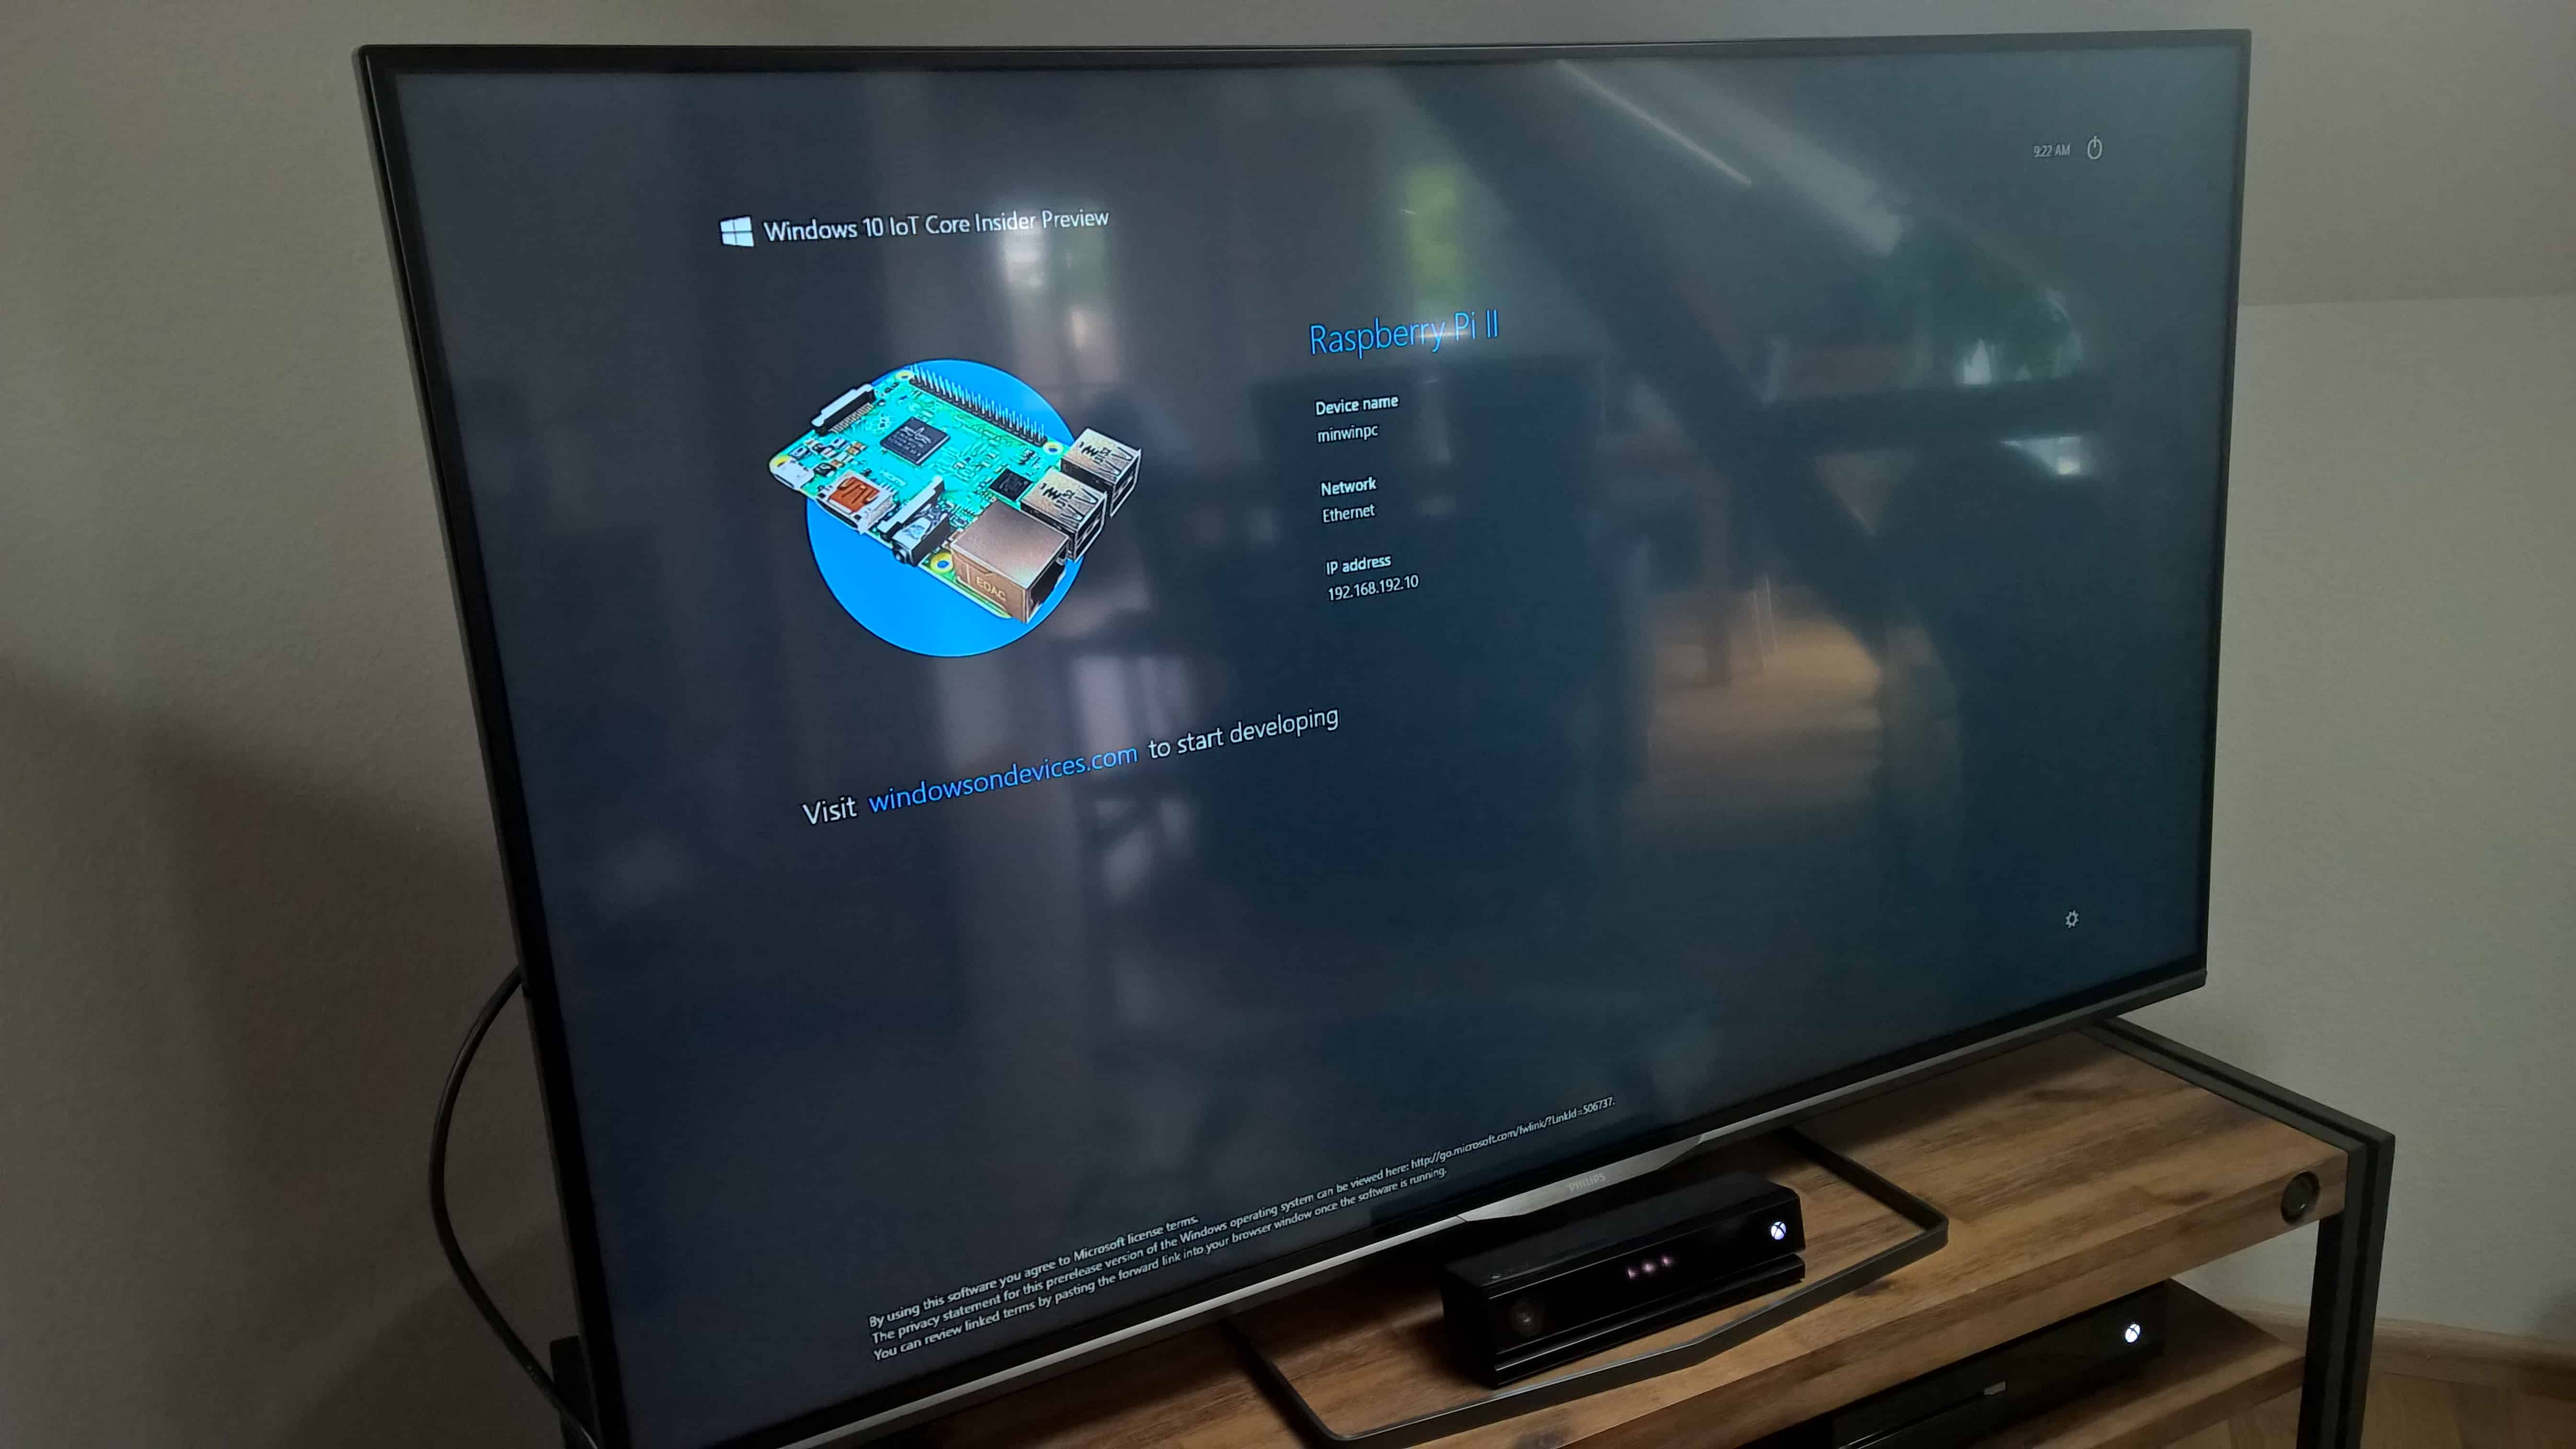 How to install the Windows 10 IoT Core on the Raspberry Pi 2